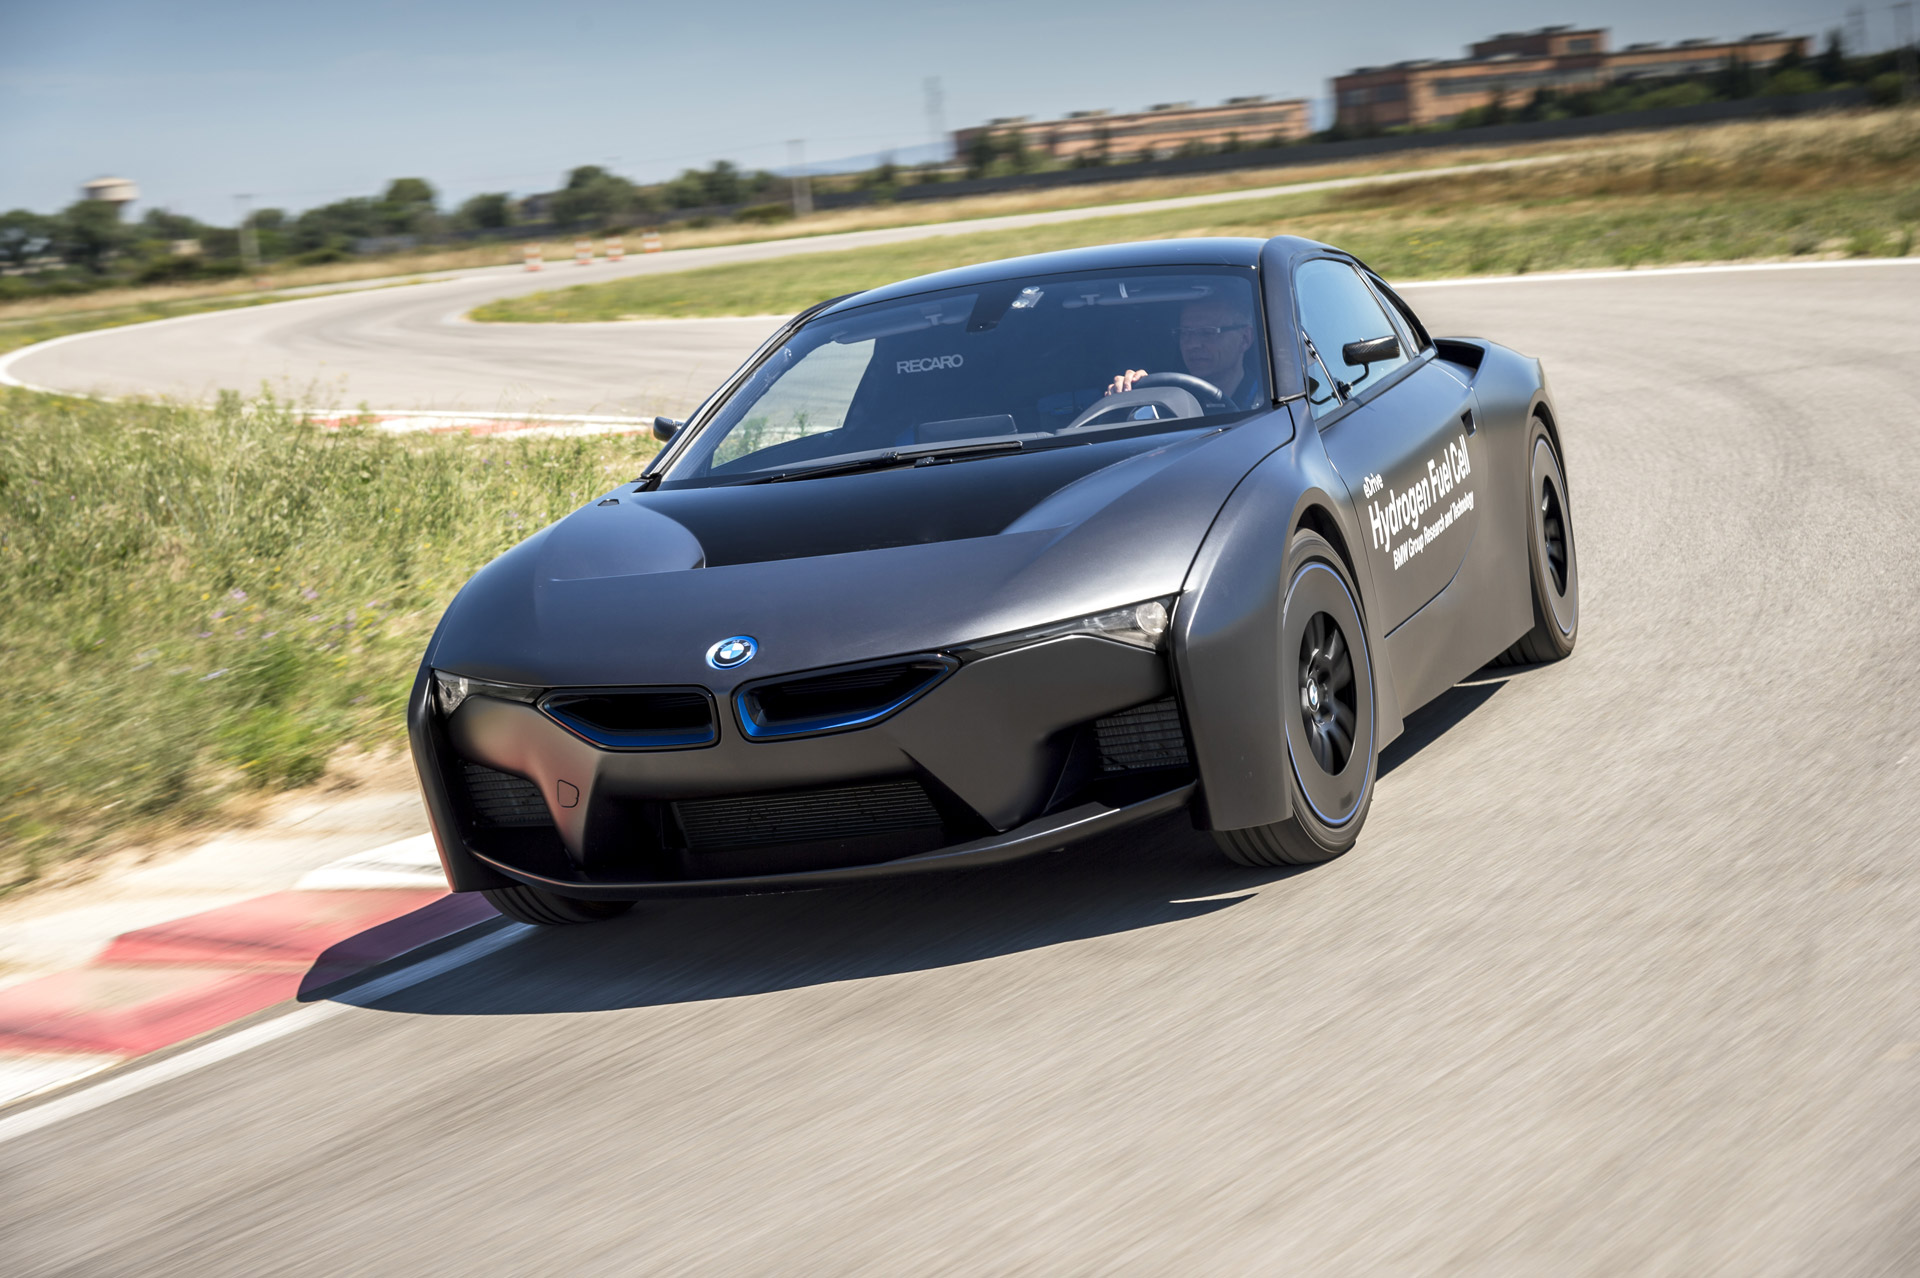 2015 Nissan Murano, July Fourth Driving, BMW i8 Fuel Cell ...